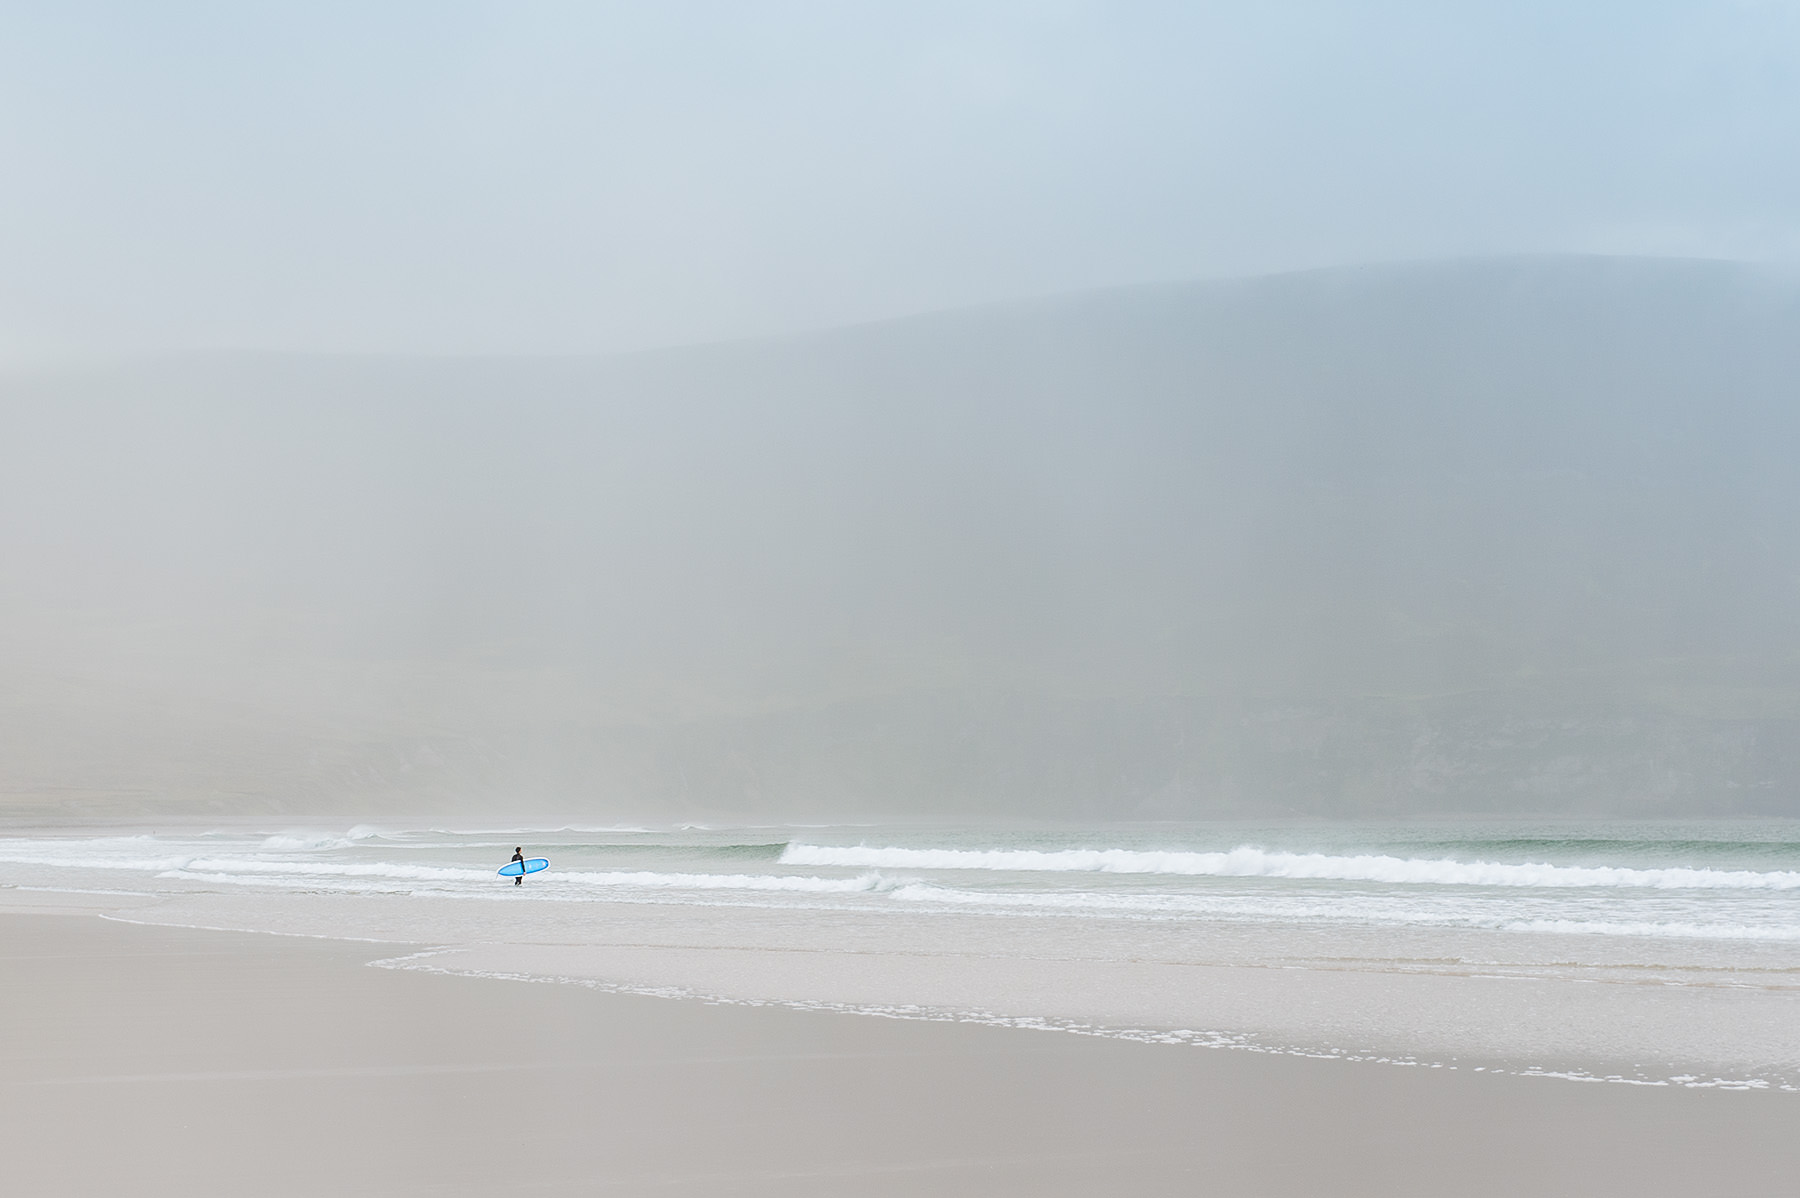 winter-surfing-ireland-sport-adventure-08.jpg